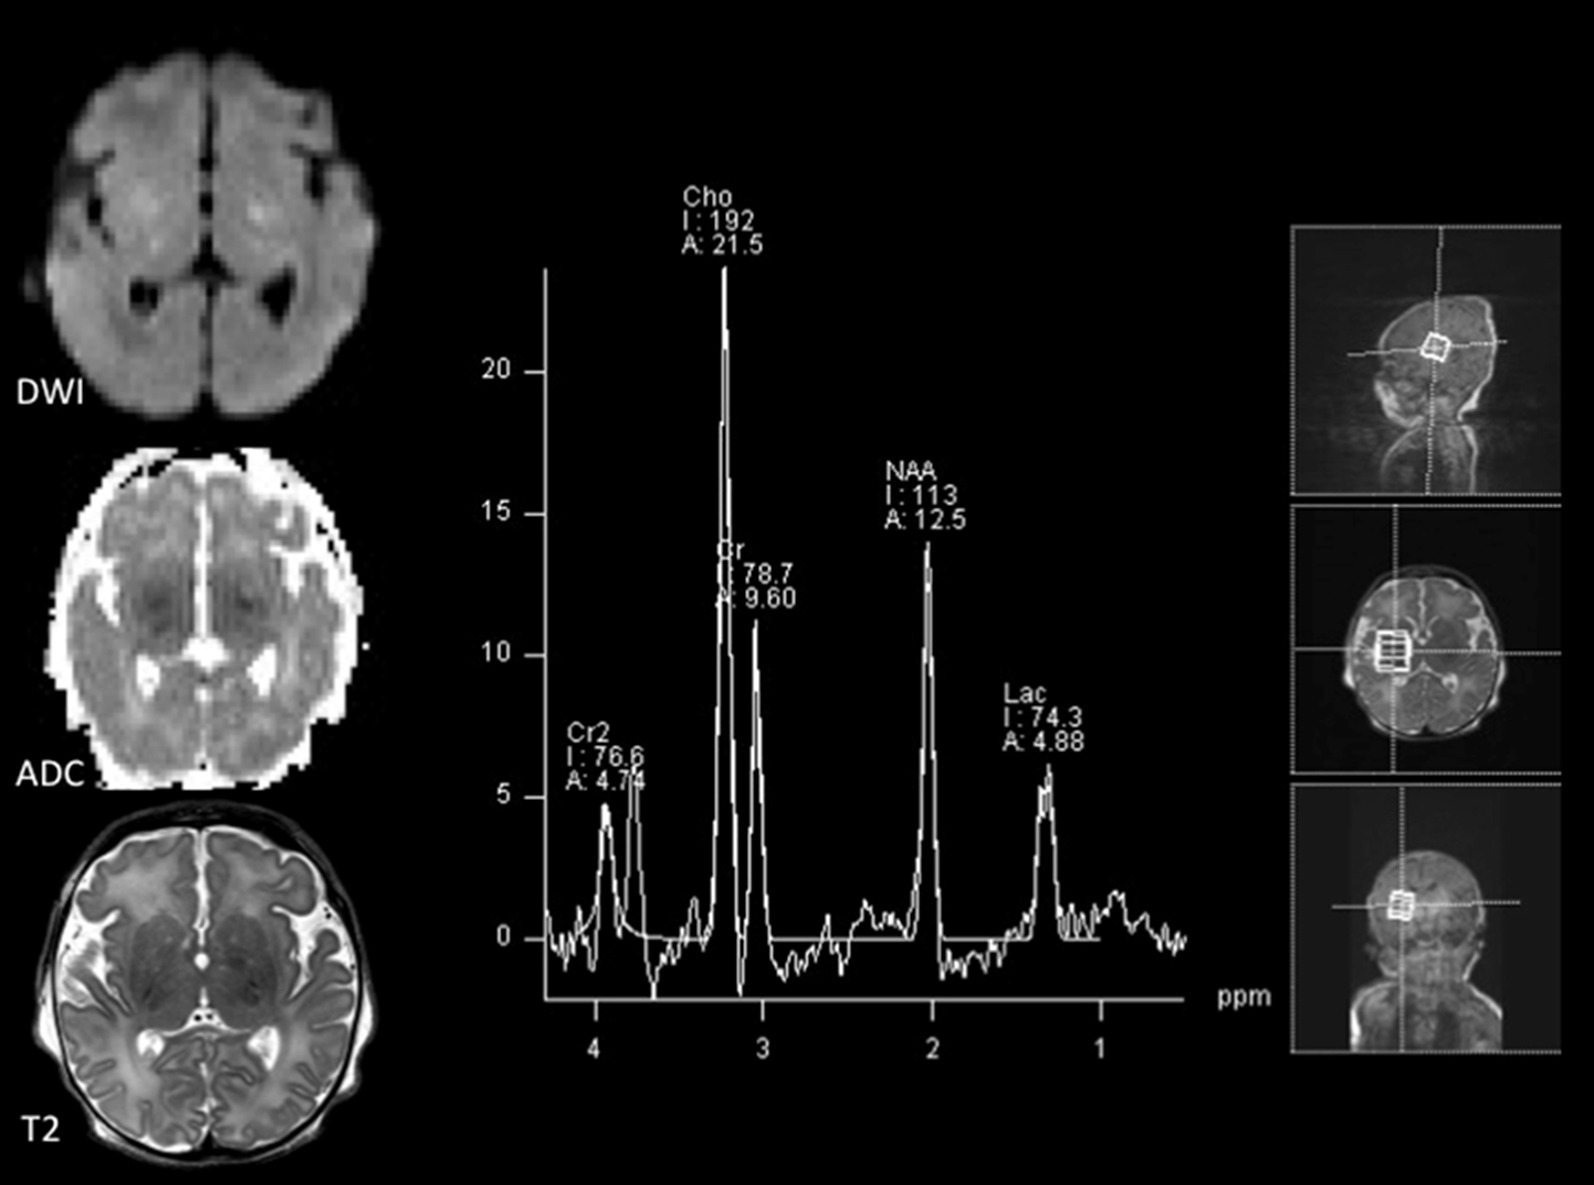 The Use Of Magnetic Resonance Spectroscopy In The Evaluation Of Pediatric Patients With Seizures